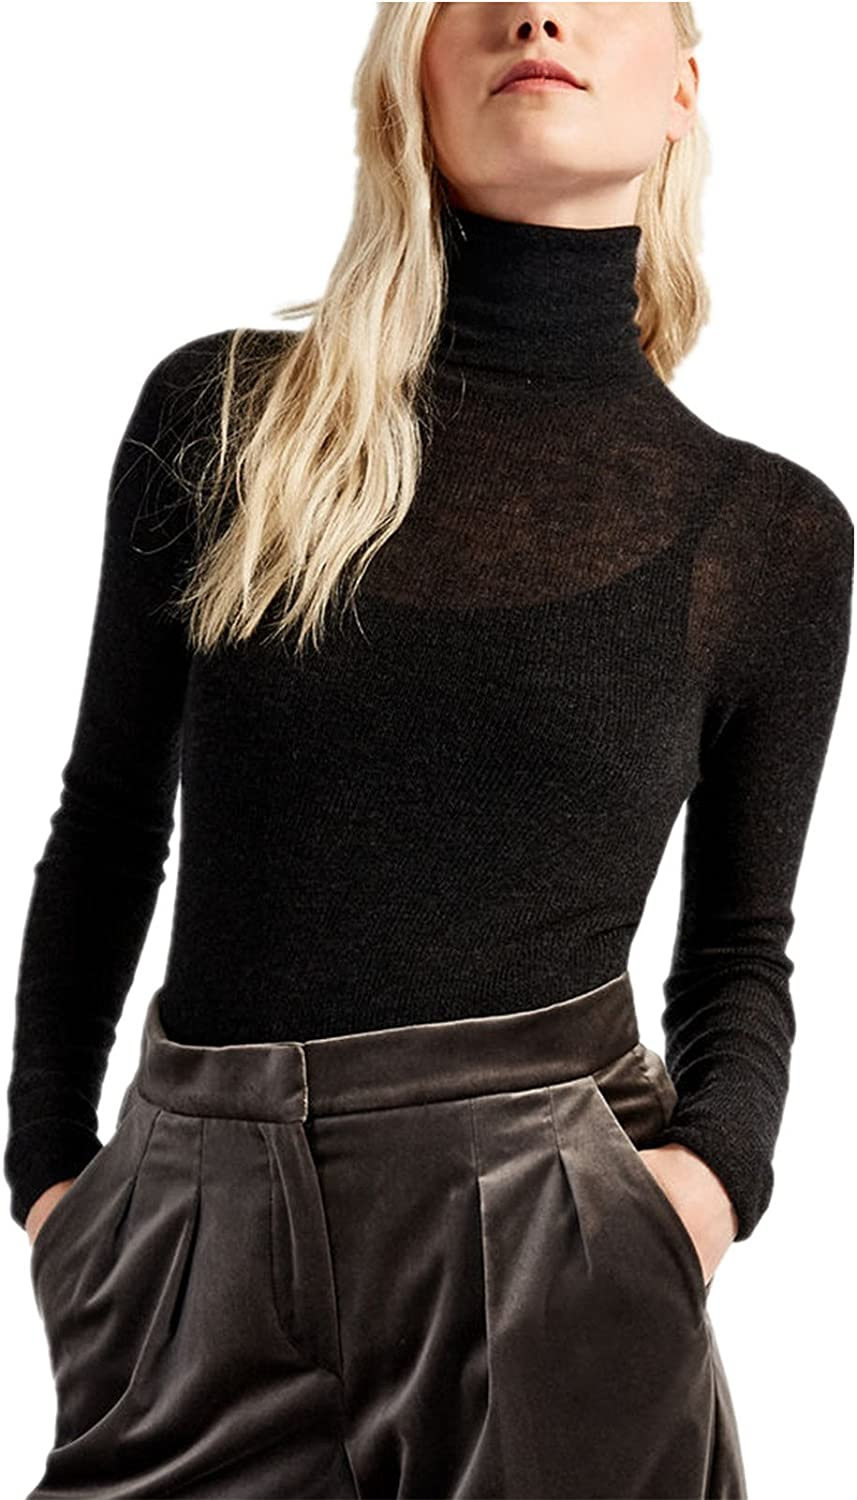 TEXAS, FOOTBALL COUNTRY Women's Lightweight Cashmere Semi Sheer Slim Fit Turtleneck Sweater